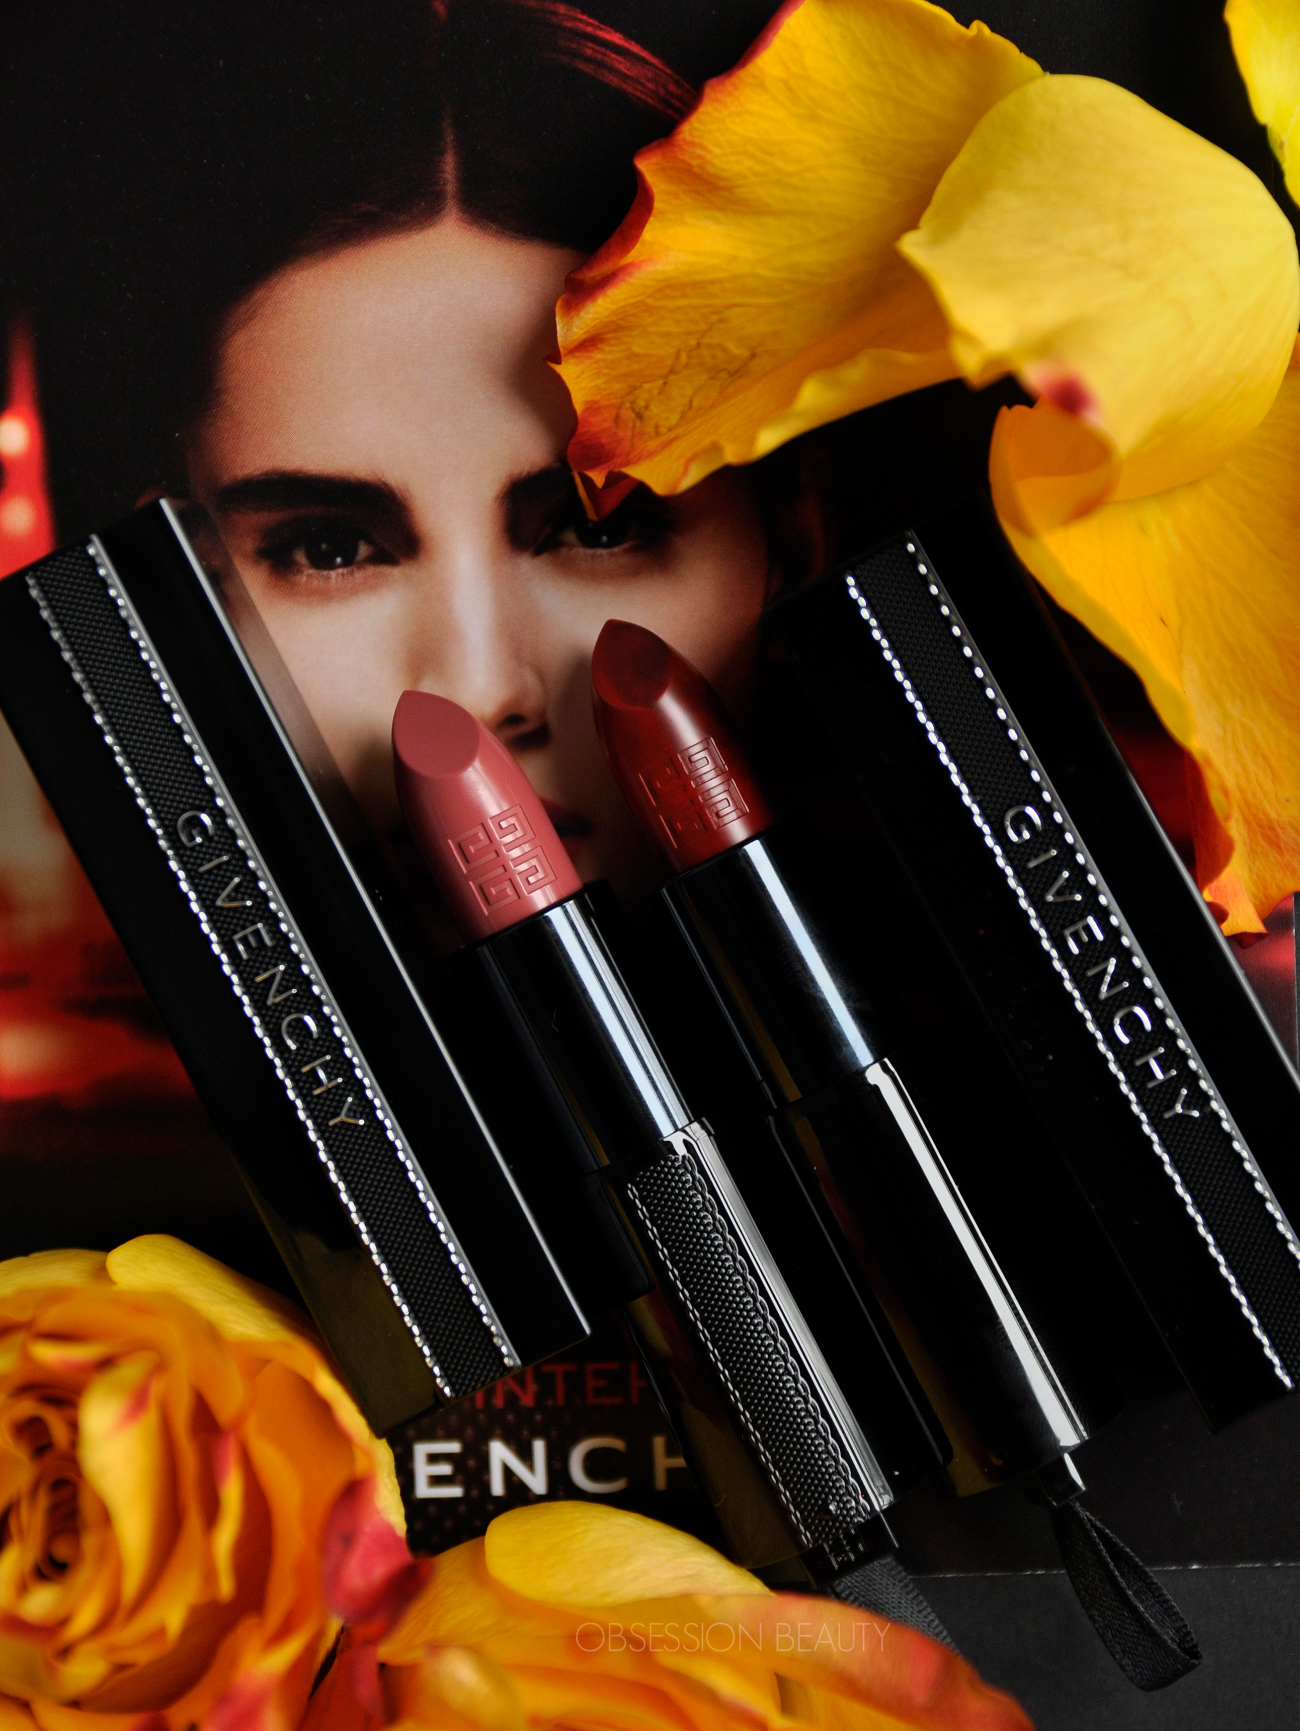 Givenchy-Rouge-Interdit5